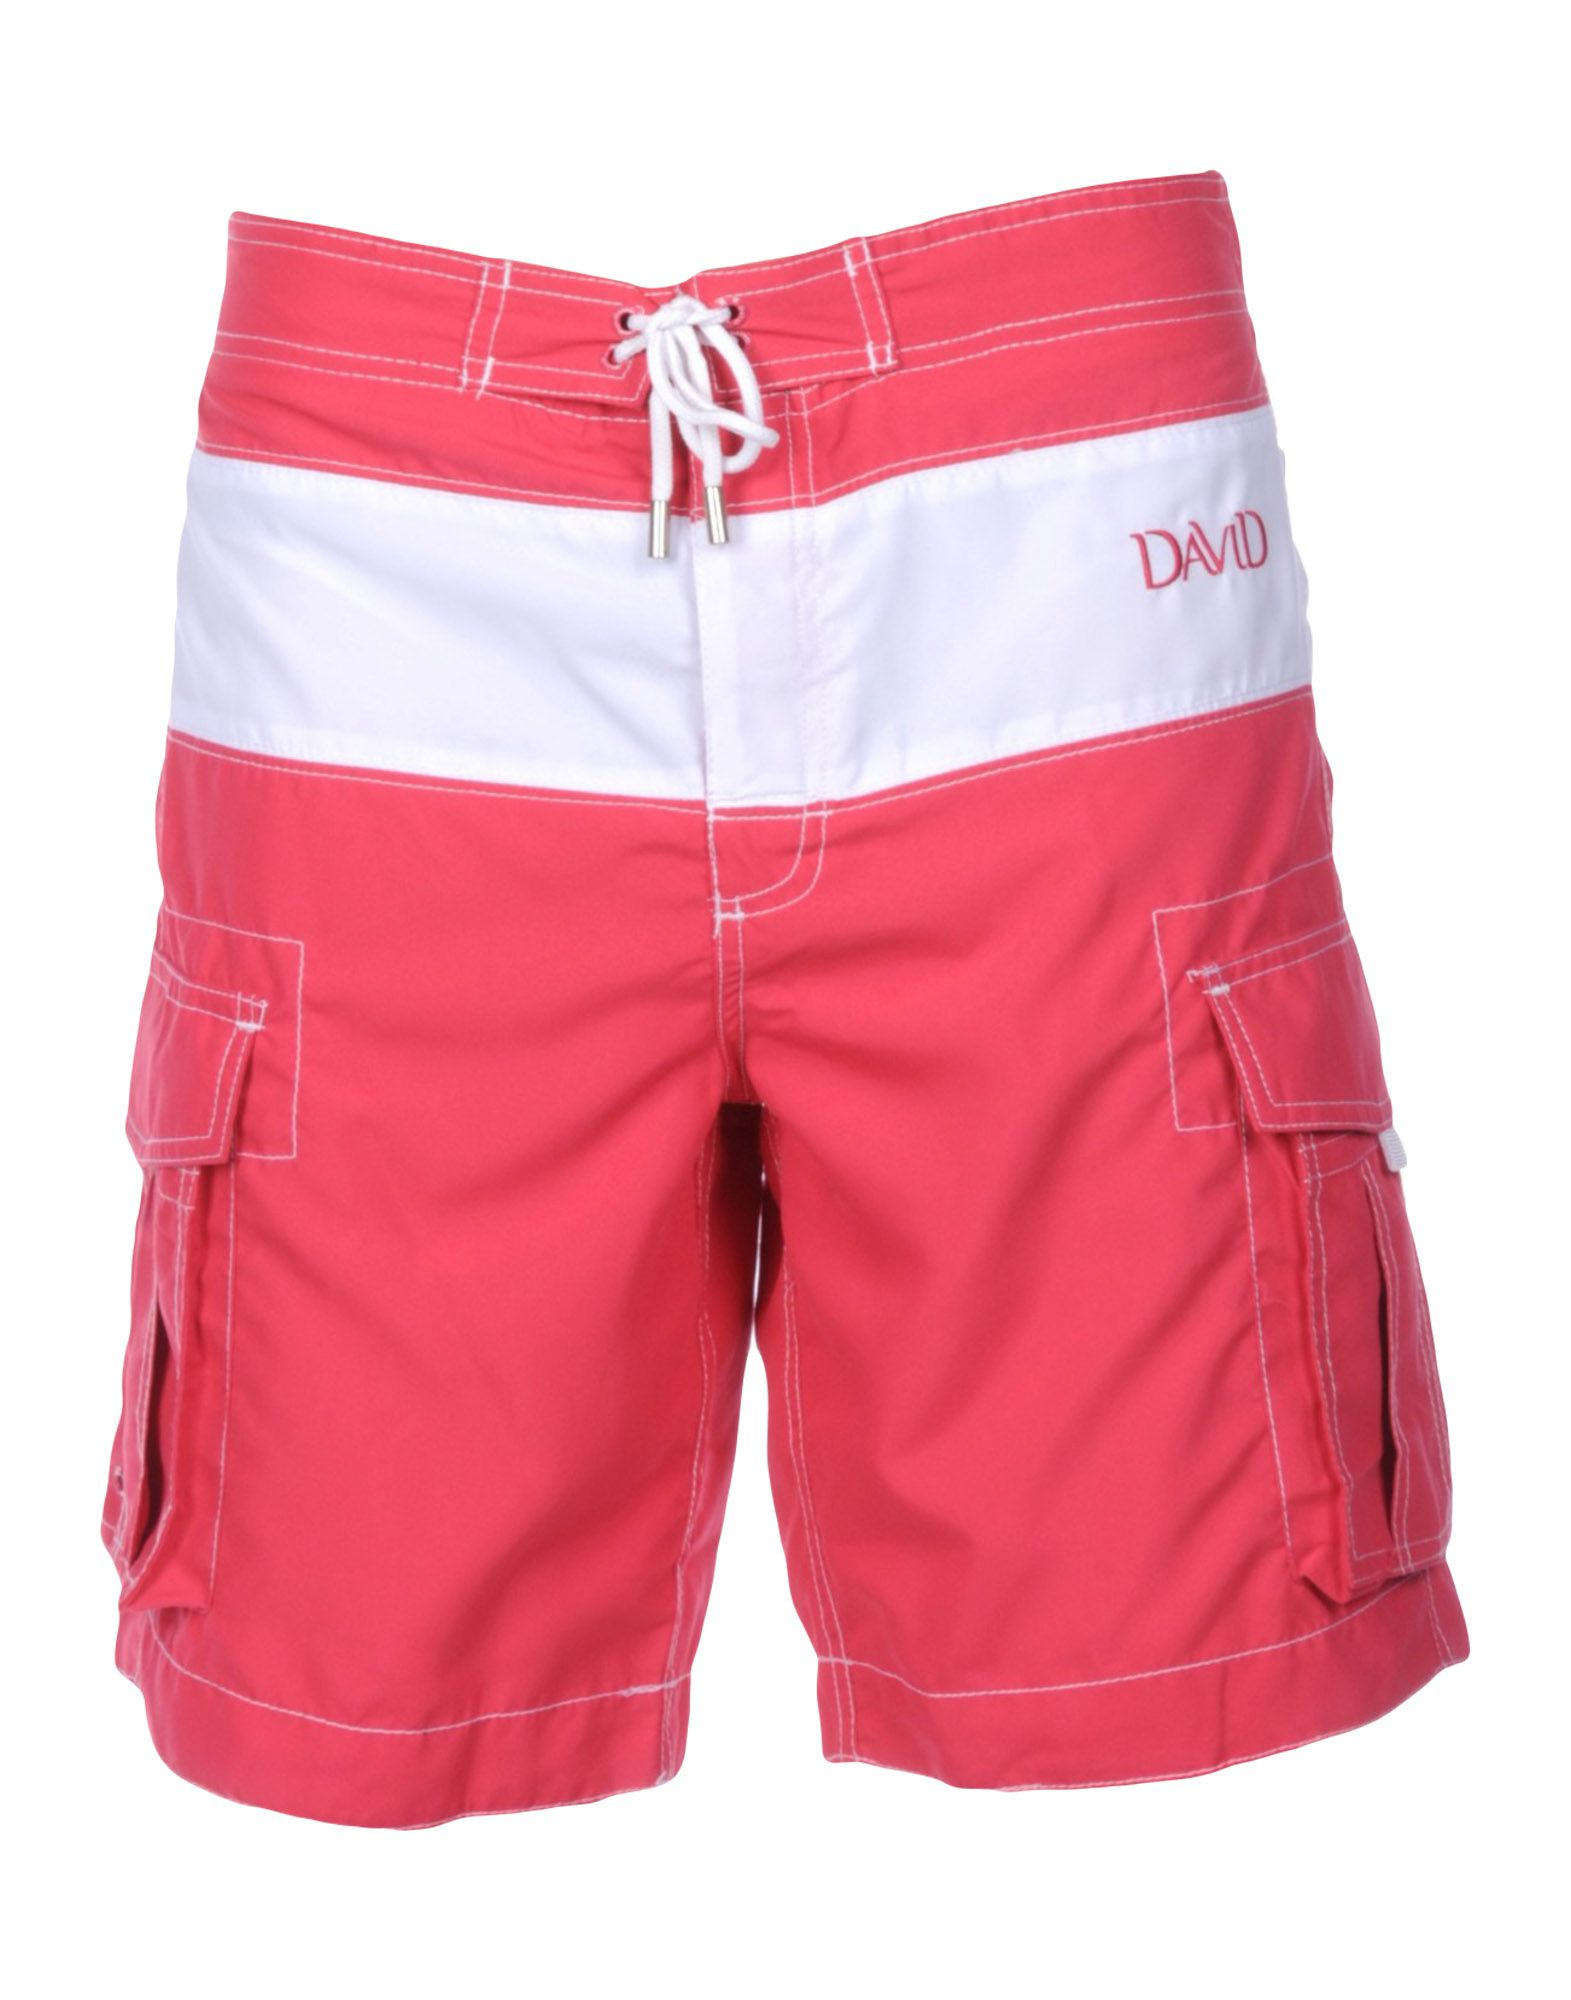 David Swim Trunks Shop At Ebates